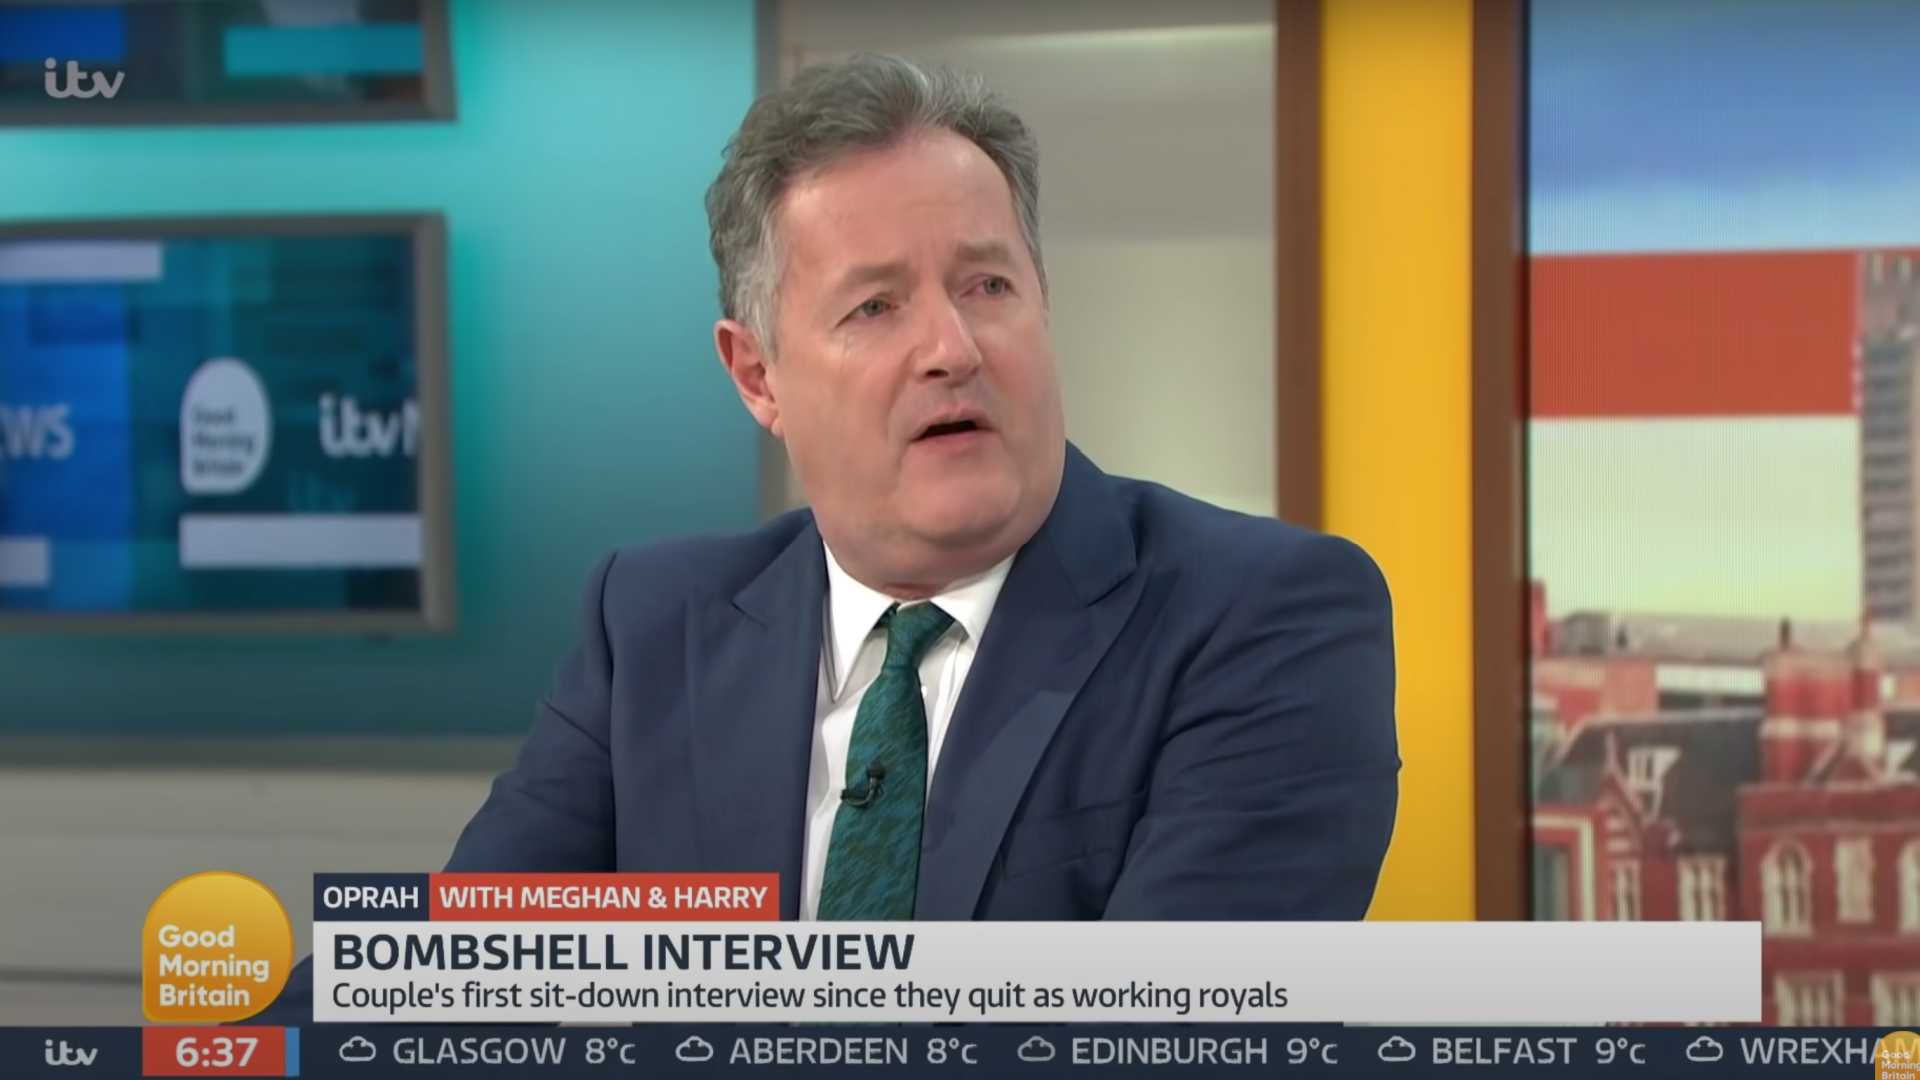 Piers Morgan: the full Meghan story and his entire scandal-filled career